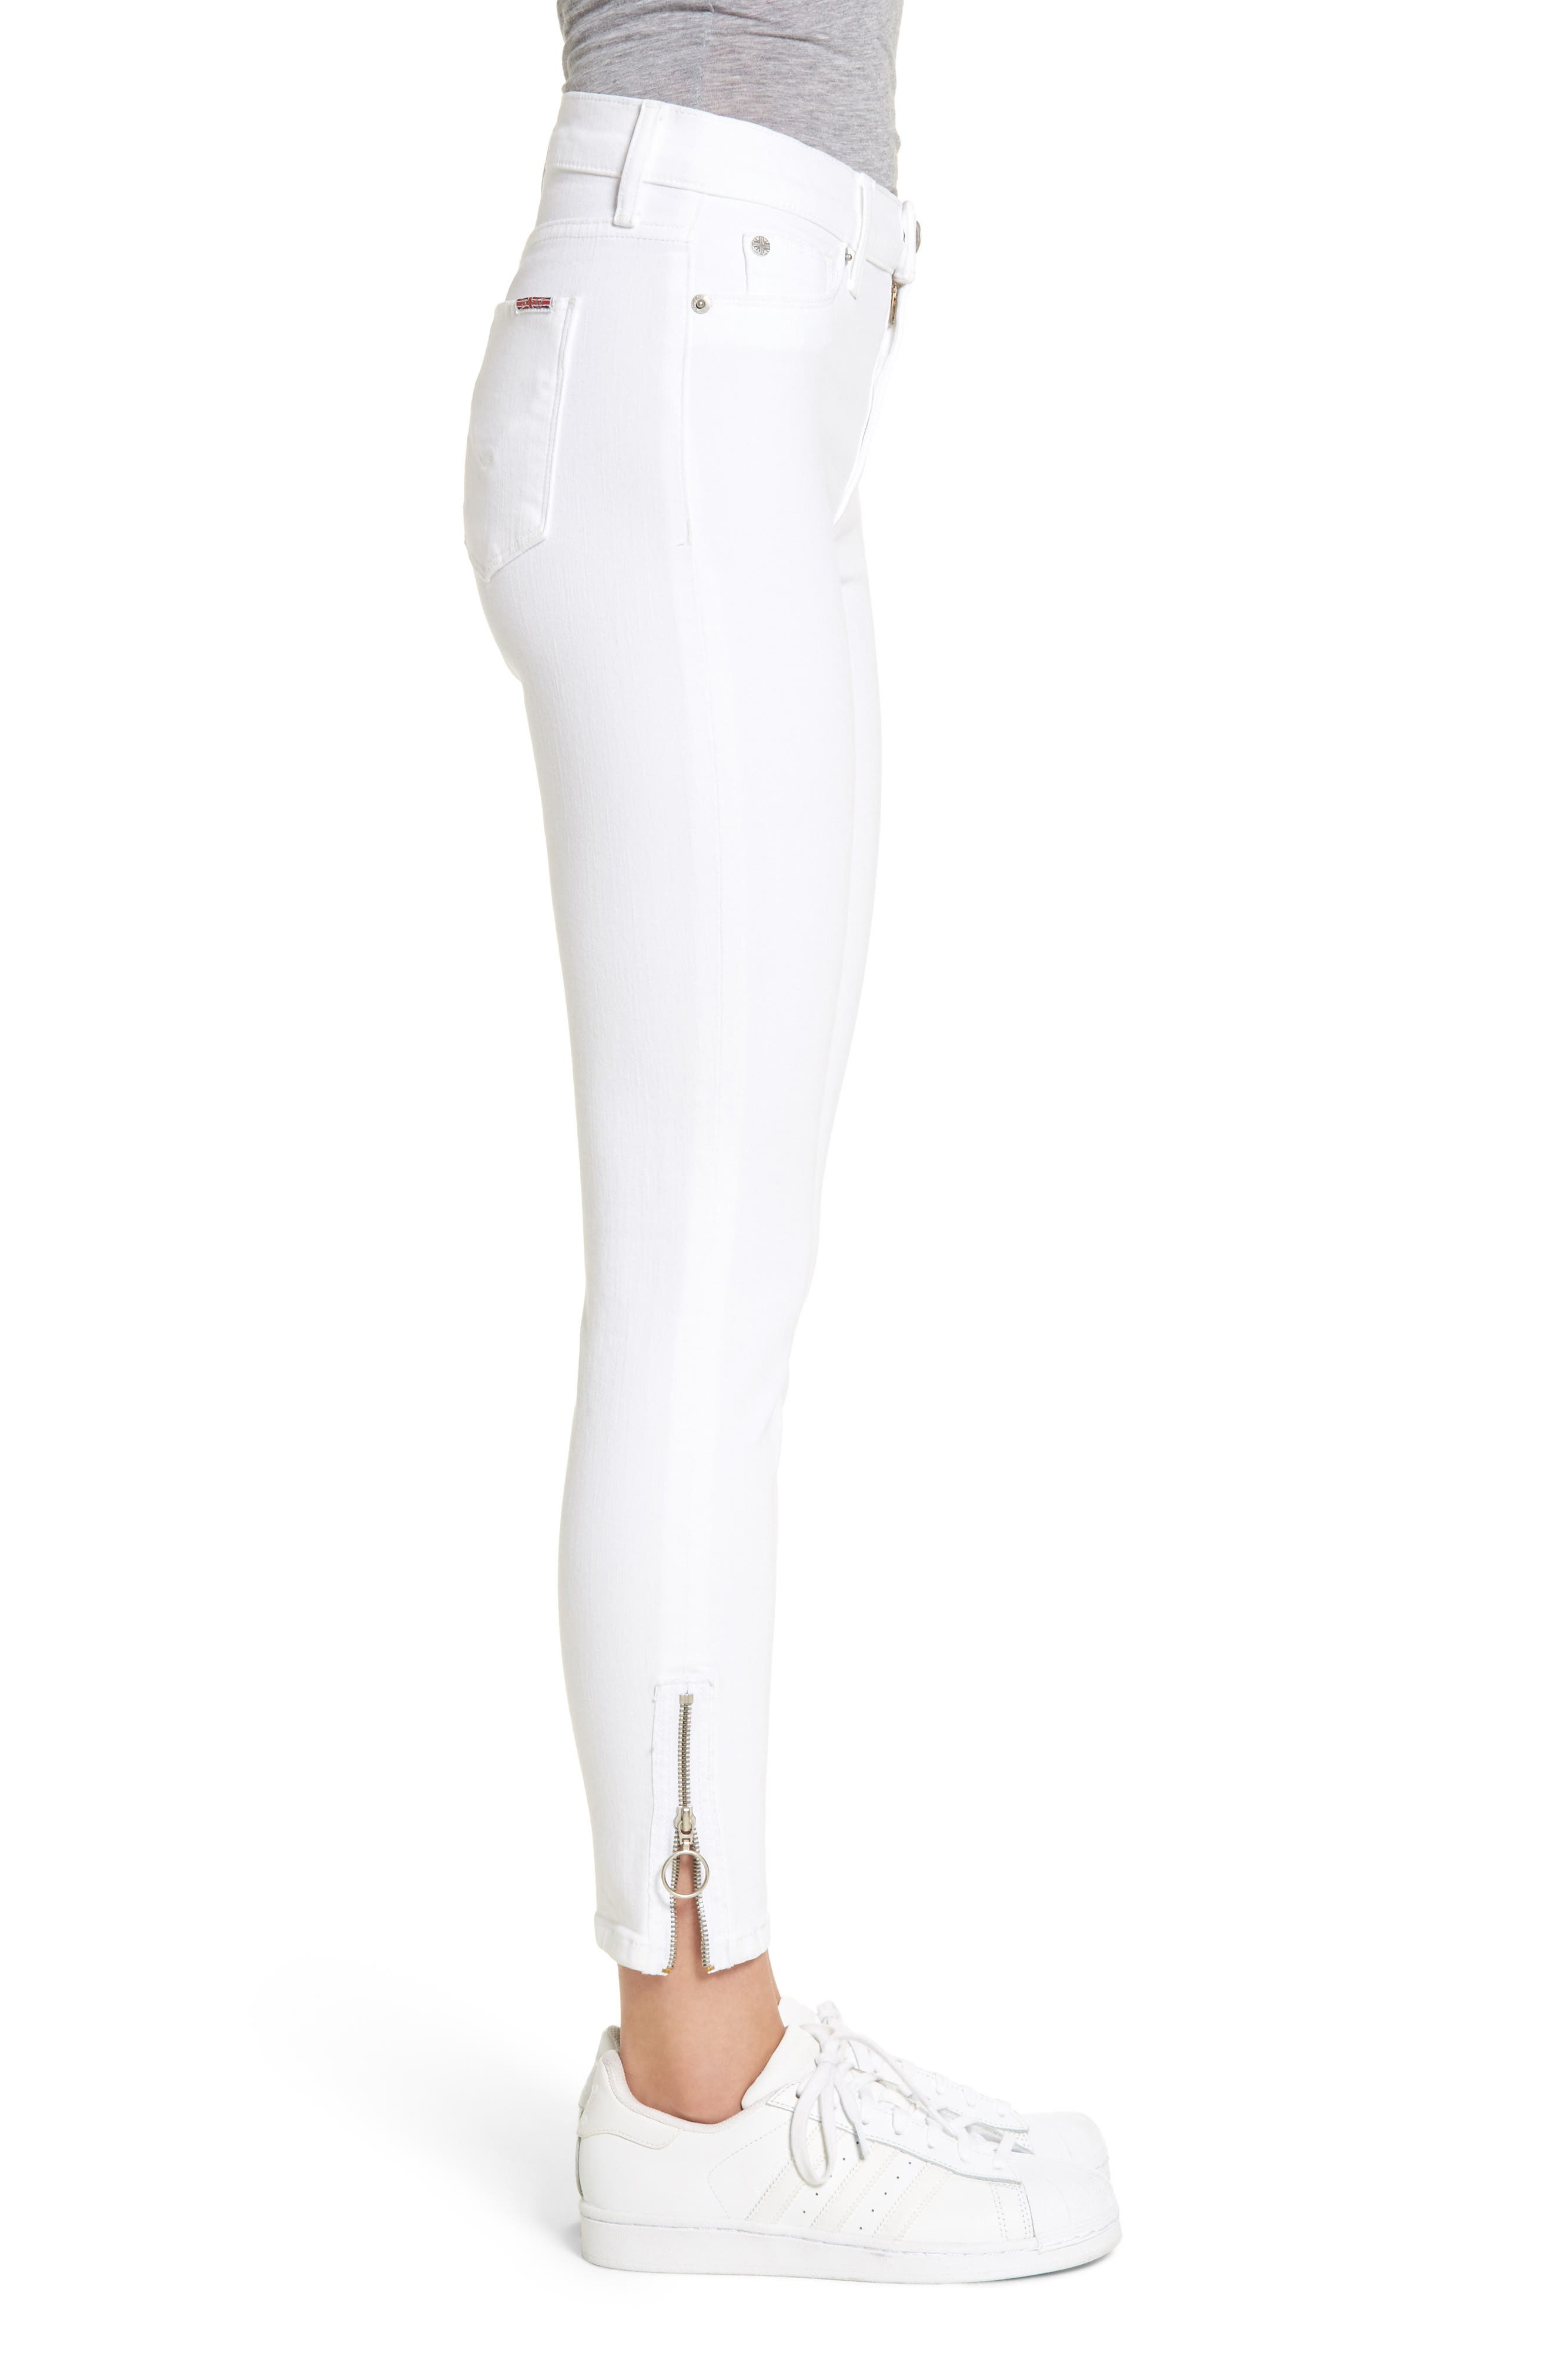 Barbara High Waist Ankle Skinny Jeans,                             Alternate thumbnail 3, color,                             Optical White